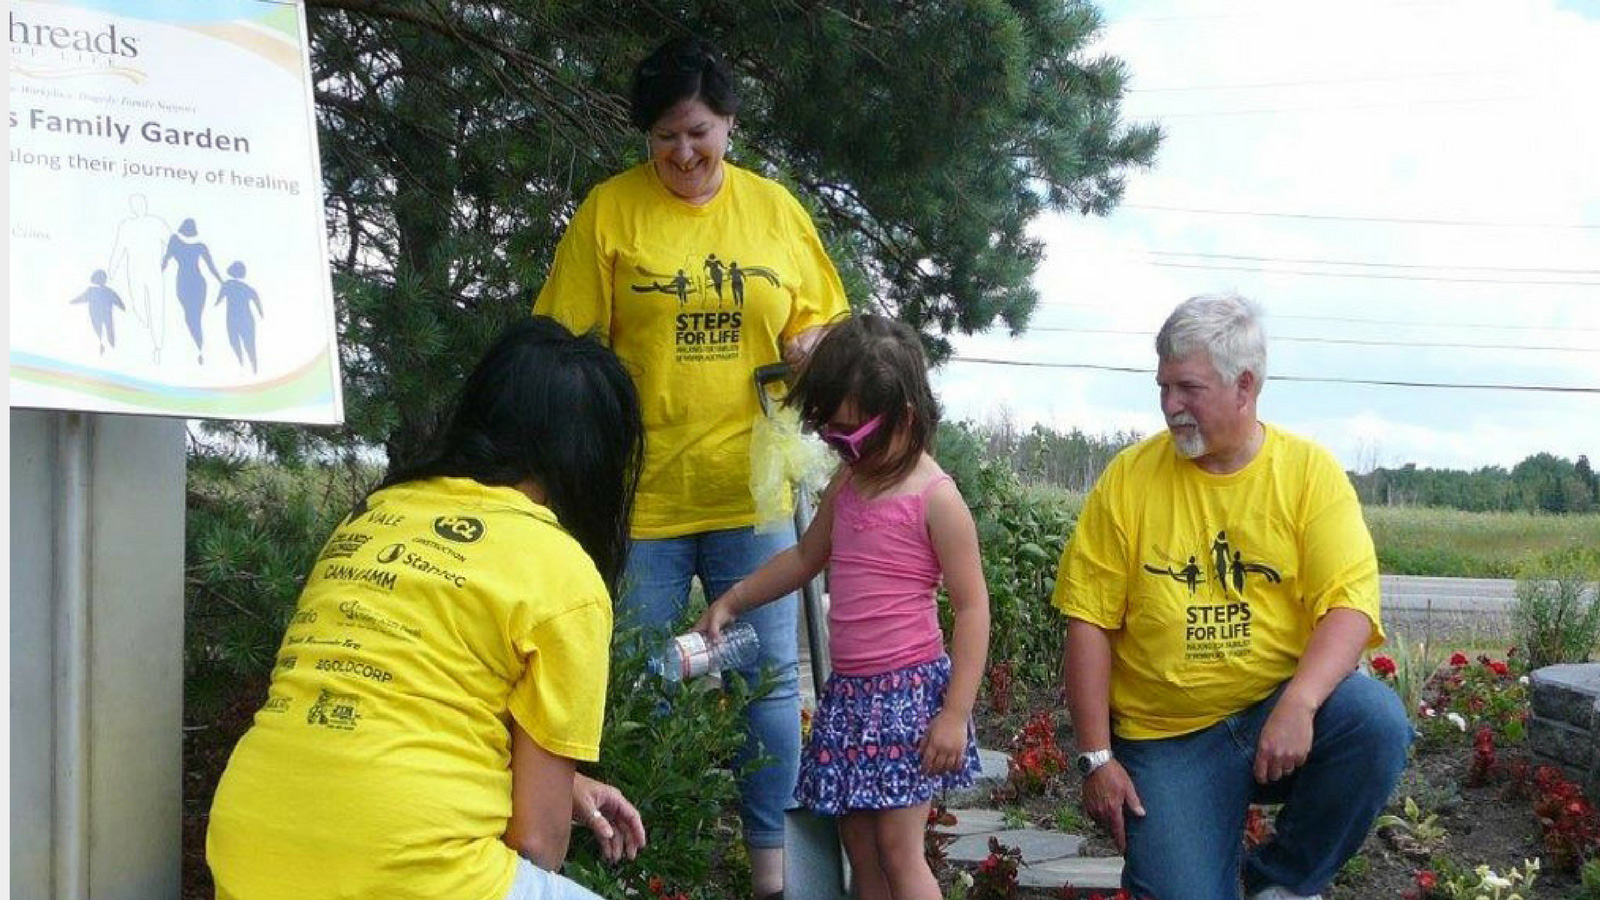 a young girl waters flowers while three adults in yellow t-shirts watch on